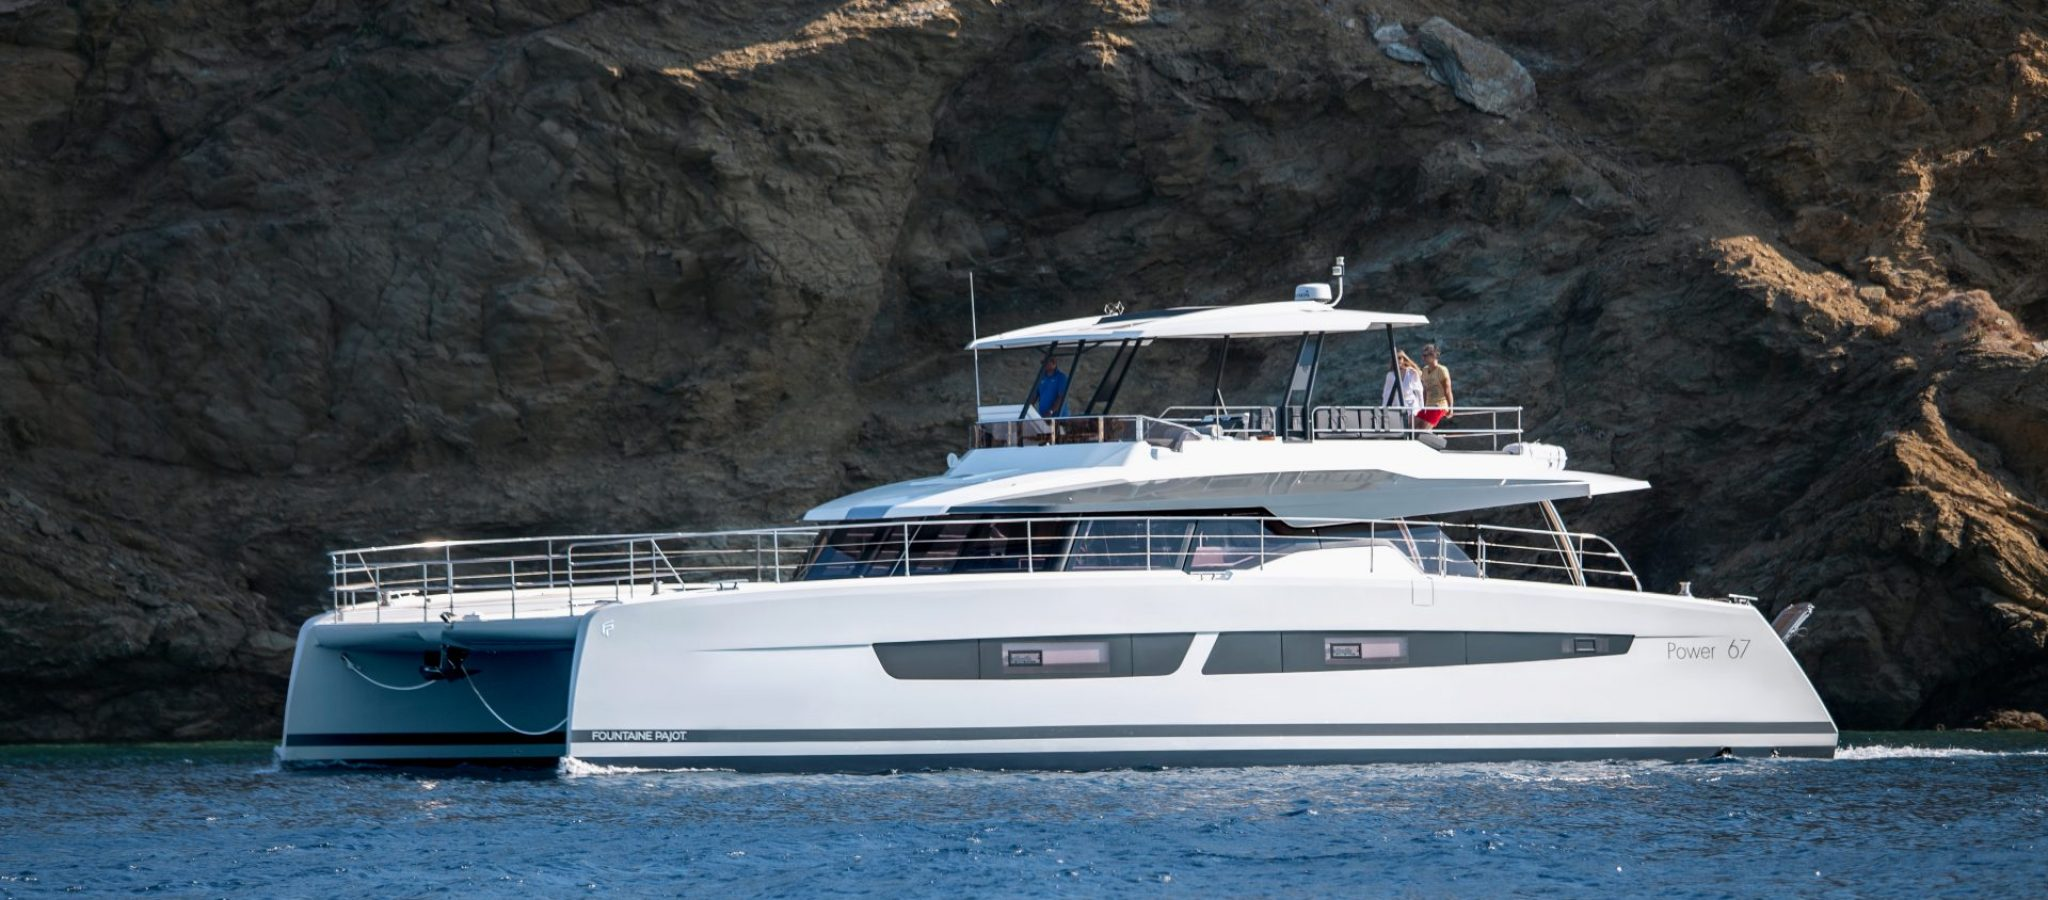 FOUNTAINE-PAJOT-POWER-67-ANCHORING-06